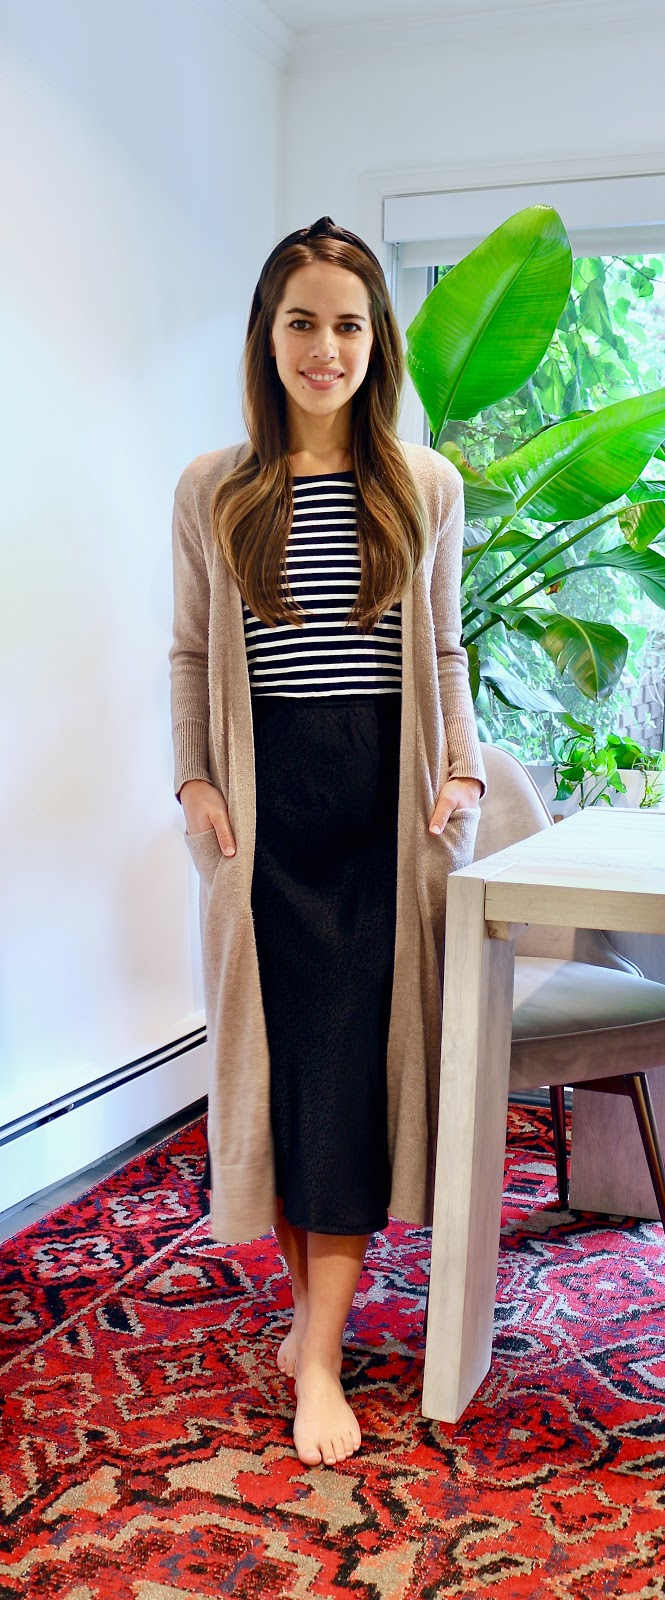 Jules in Flats - Black Midi Skirt with Striped Tee & Duster Cardigan (Easy Work from Home Outfit).jpeg